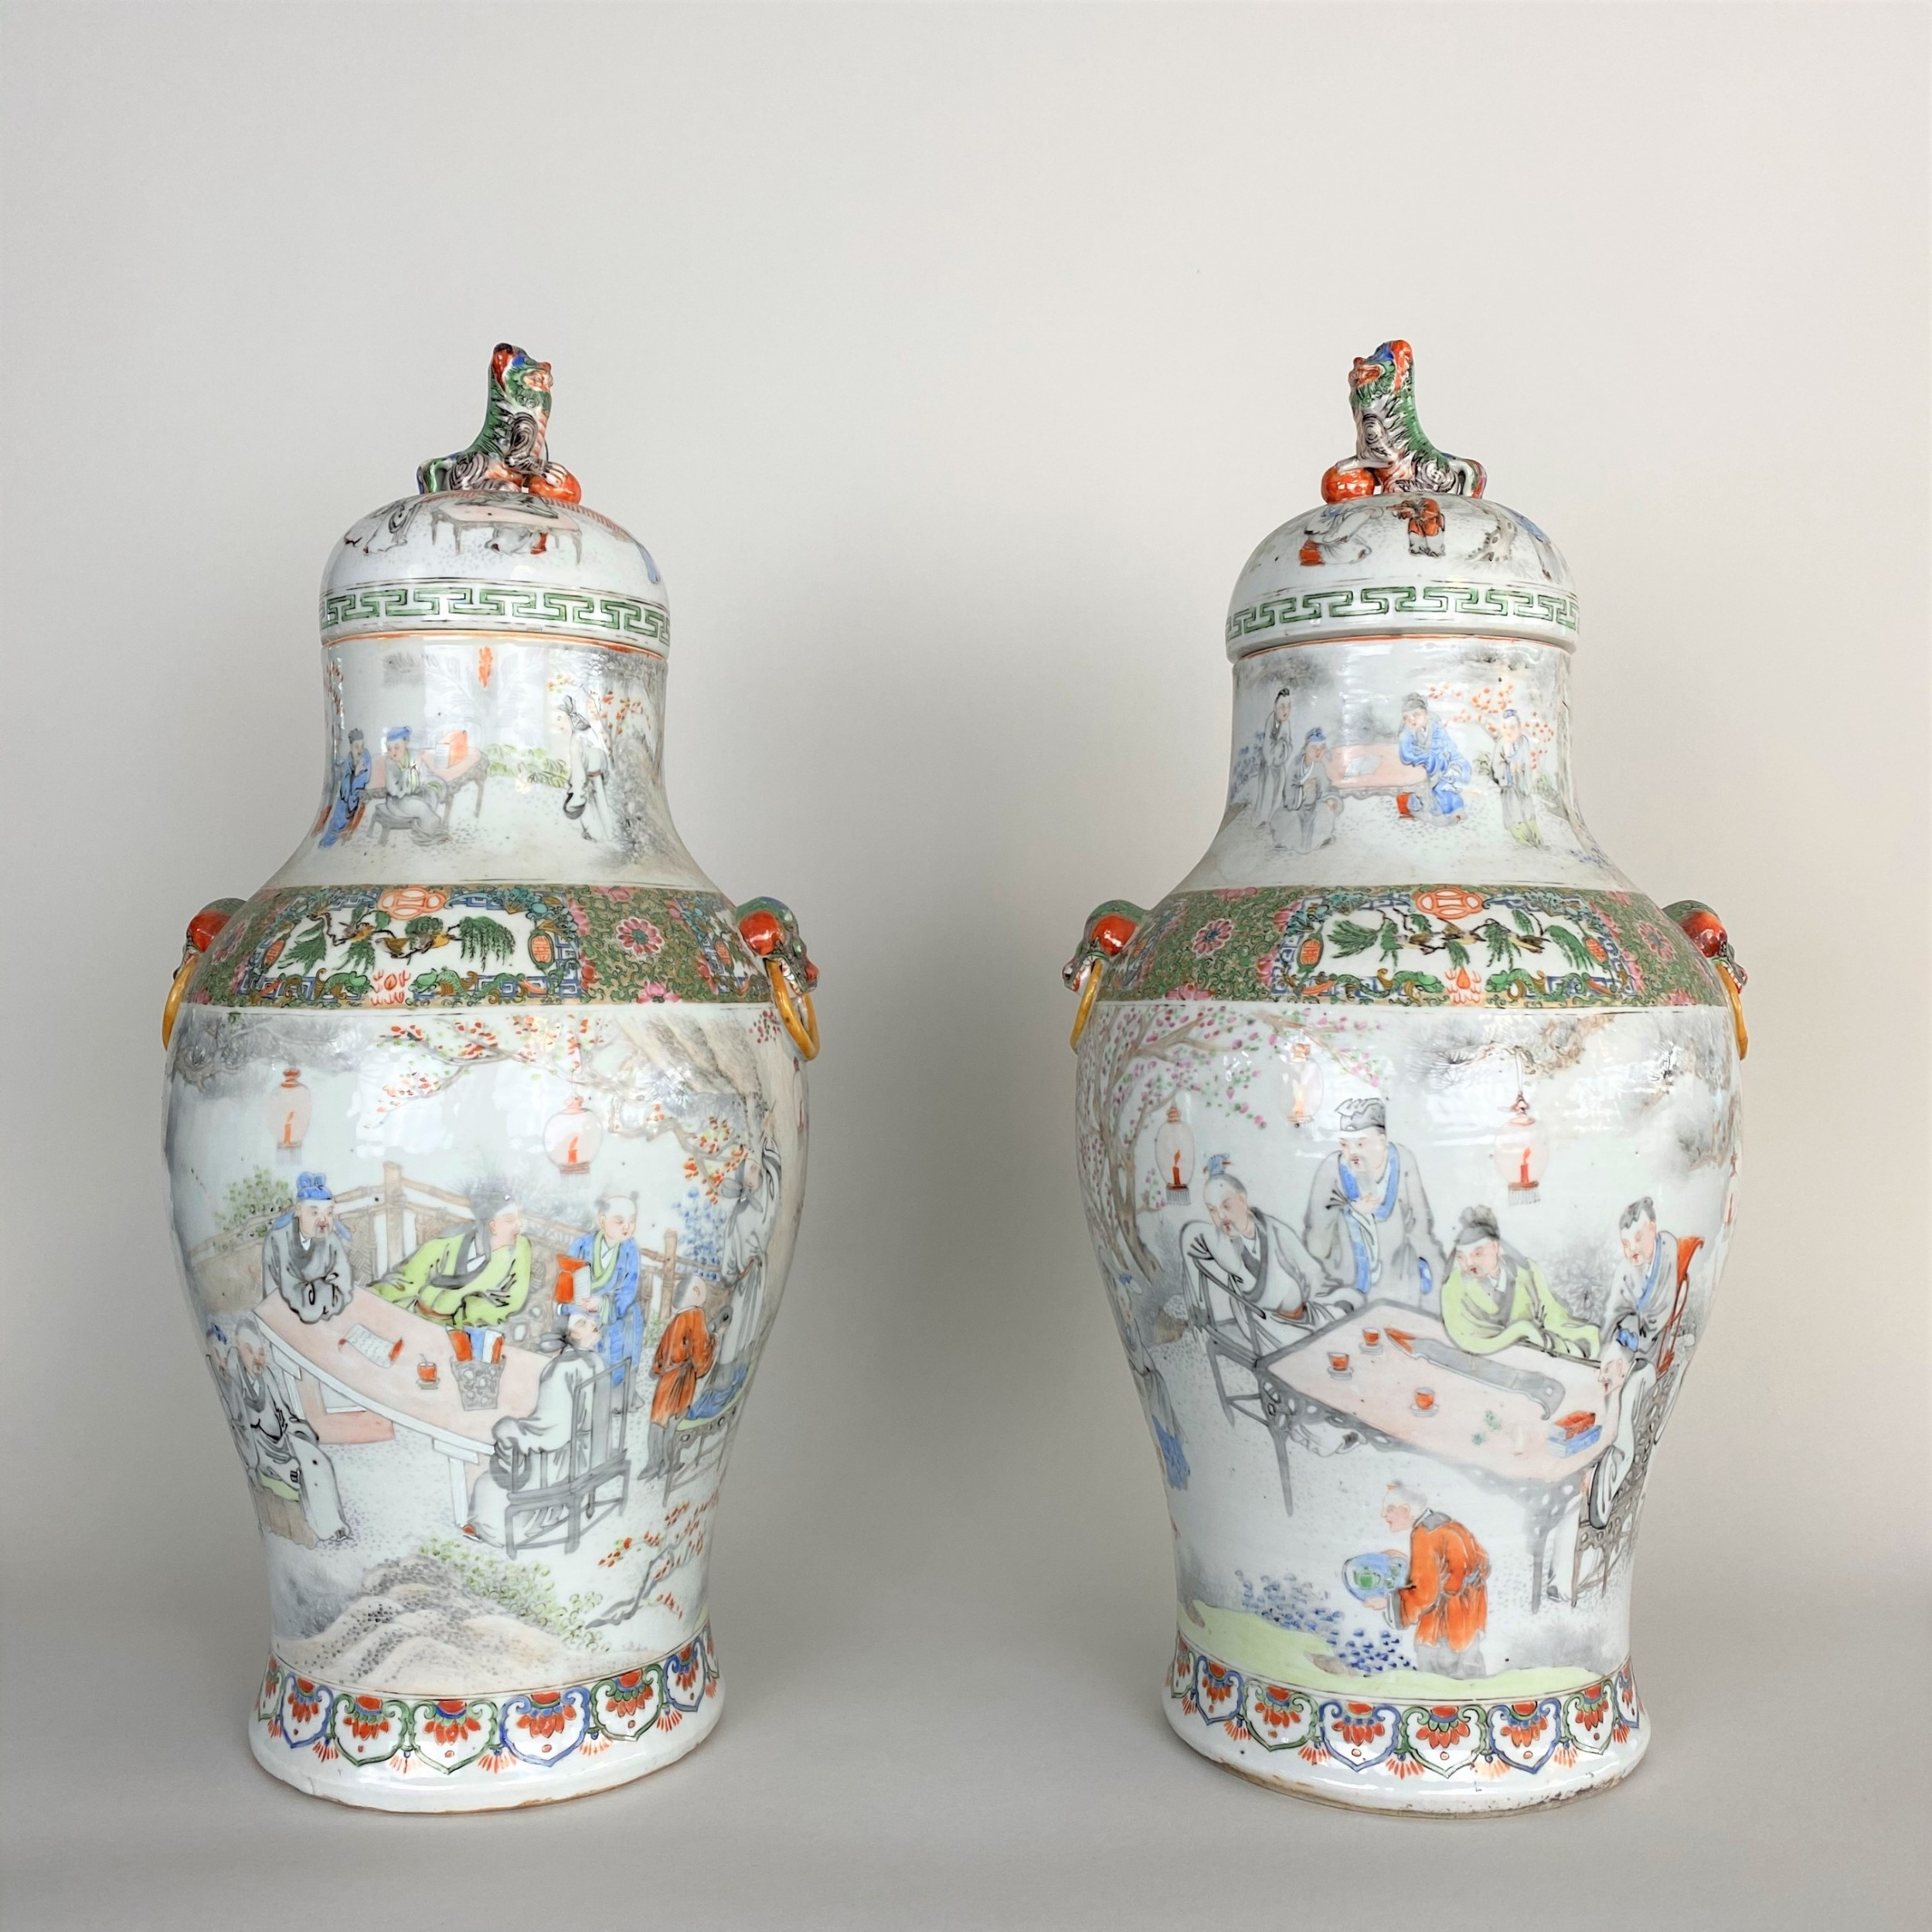 a large and unusual pair of antique canton chinese jars and covers